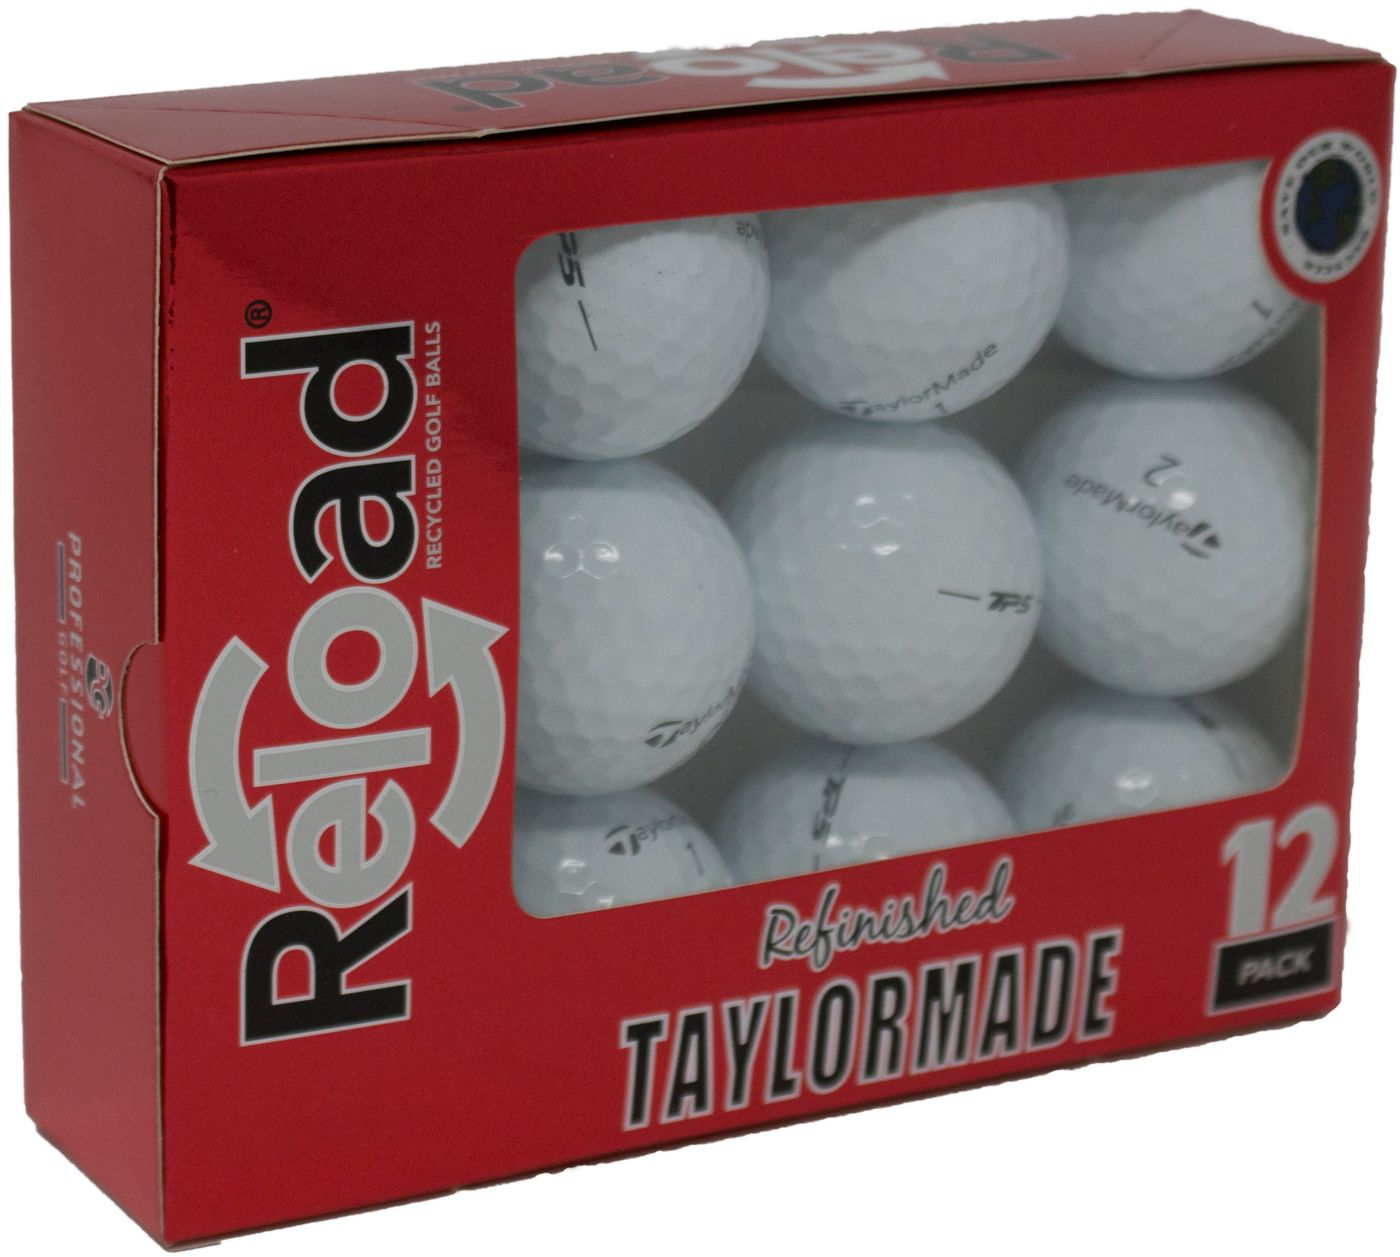 Refurbished TaylorMade TP5 Golf Balls